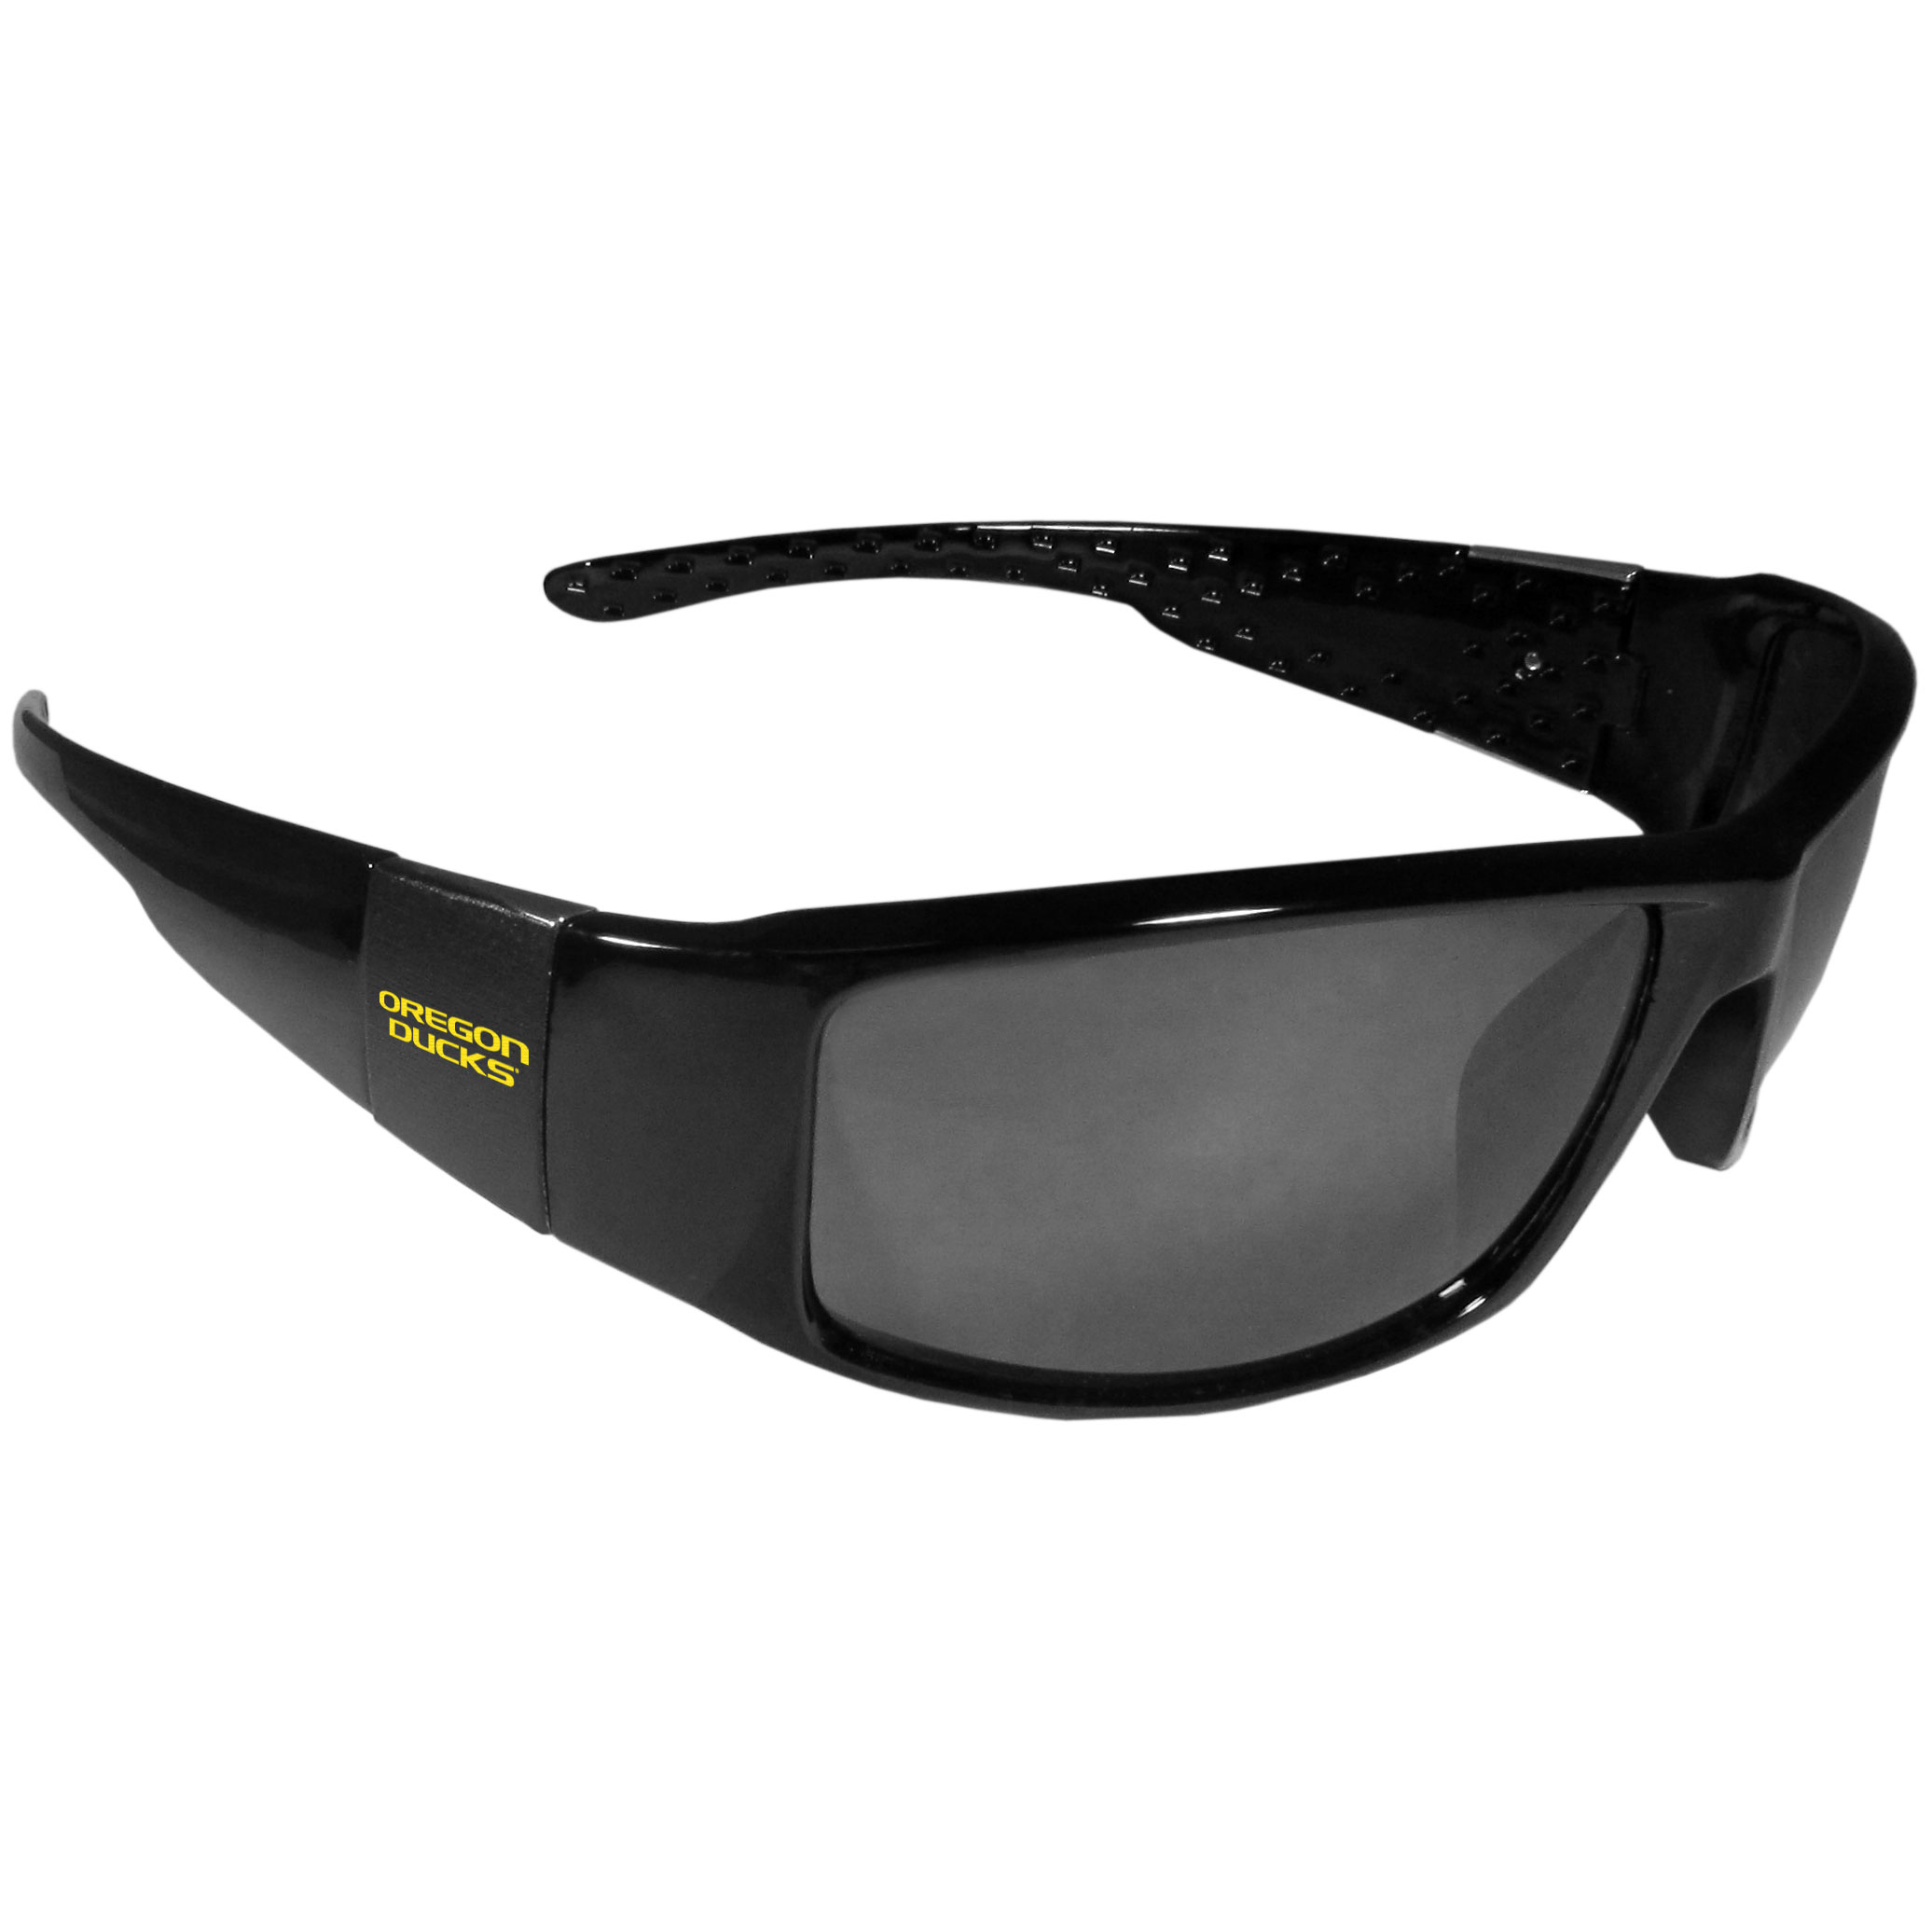 Oregon Ducks Black Wrap Sunglasses - These designer inspired frames have a sleek look in all black with  Oregon Ducks shields on each arm with a printed logo. The shades are perfect for any outdoor activity like; golfing, driving, hiking, fishing or cheering on the team at a tailgating event or at a home game day BBQ with a lens rating of 100% UVA/UVB for maximum UV protection. The high-quality frames are as durable as they are fashionable and with their classic look they are the perfect fan accessory that can be worn everyday for every occasion.